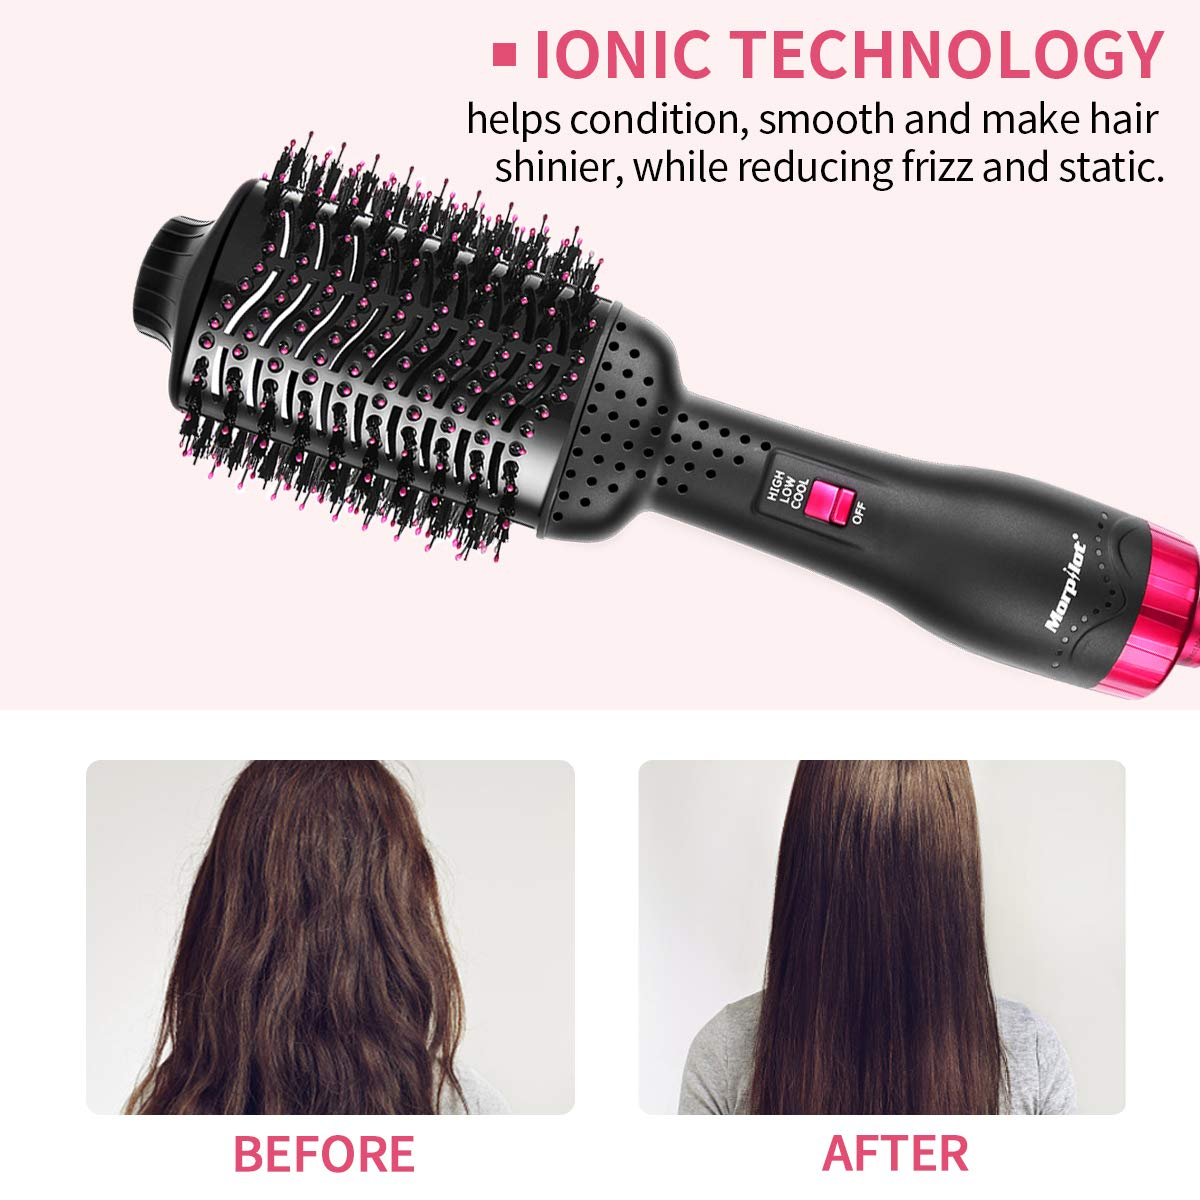 Hair Dryer Brush, Multifunctional Hair Dryer & Volumizer Salon Hot Hair Brush Roller Comb Negative Ions Hair Dryer Curler Straightener for All Hair Type